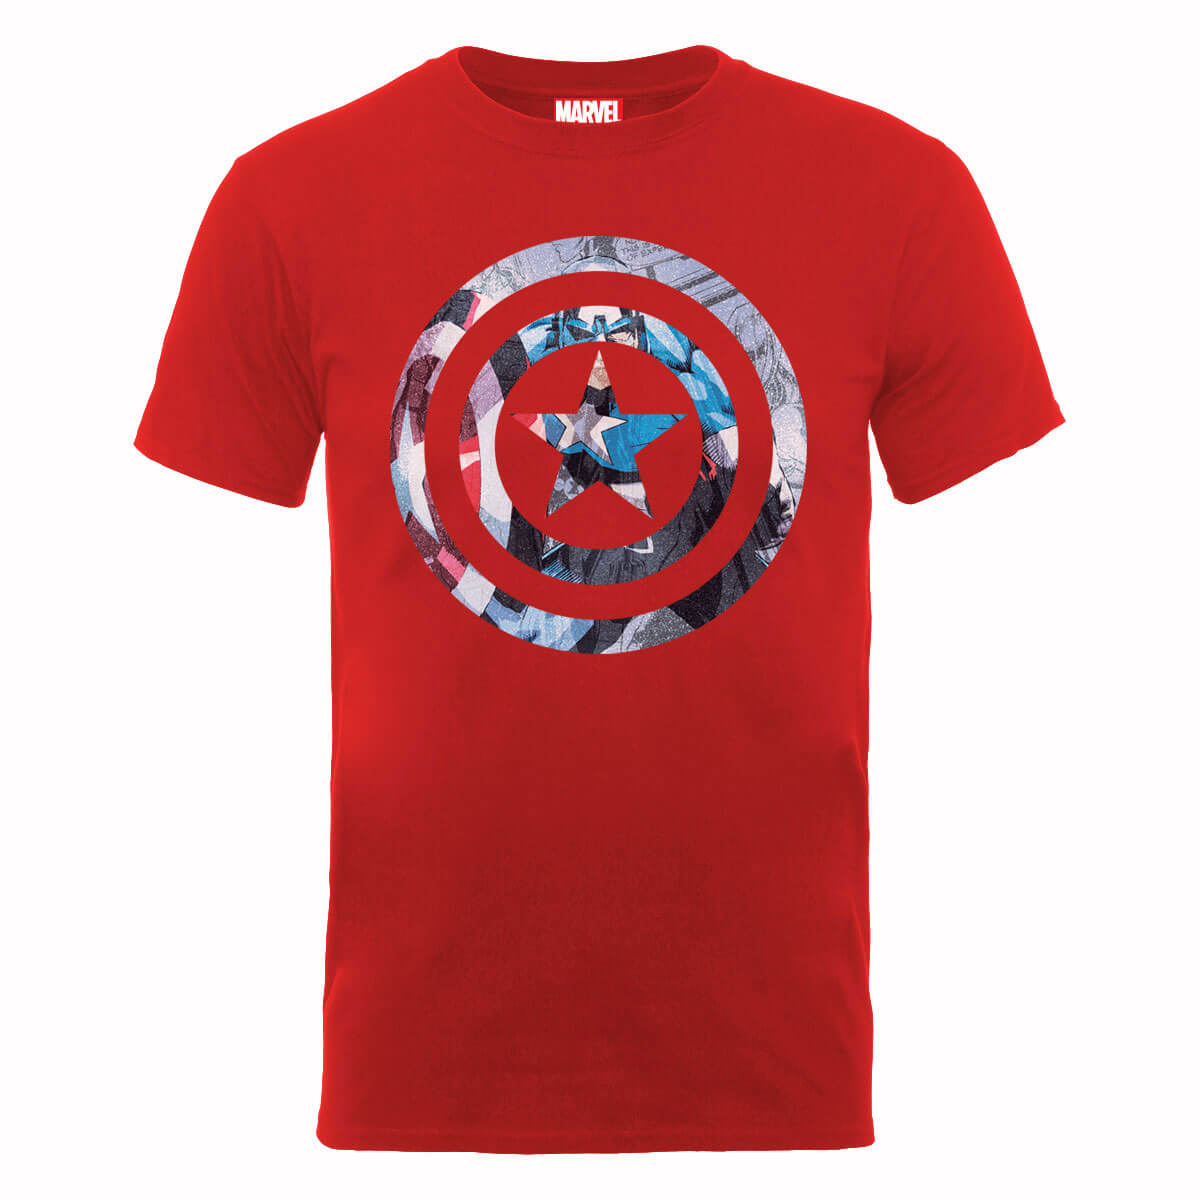 Marvel Avengers Assemble Captain America Shield Montage T-Shirt - Red Clothing | Zavvi US